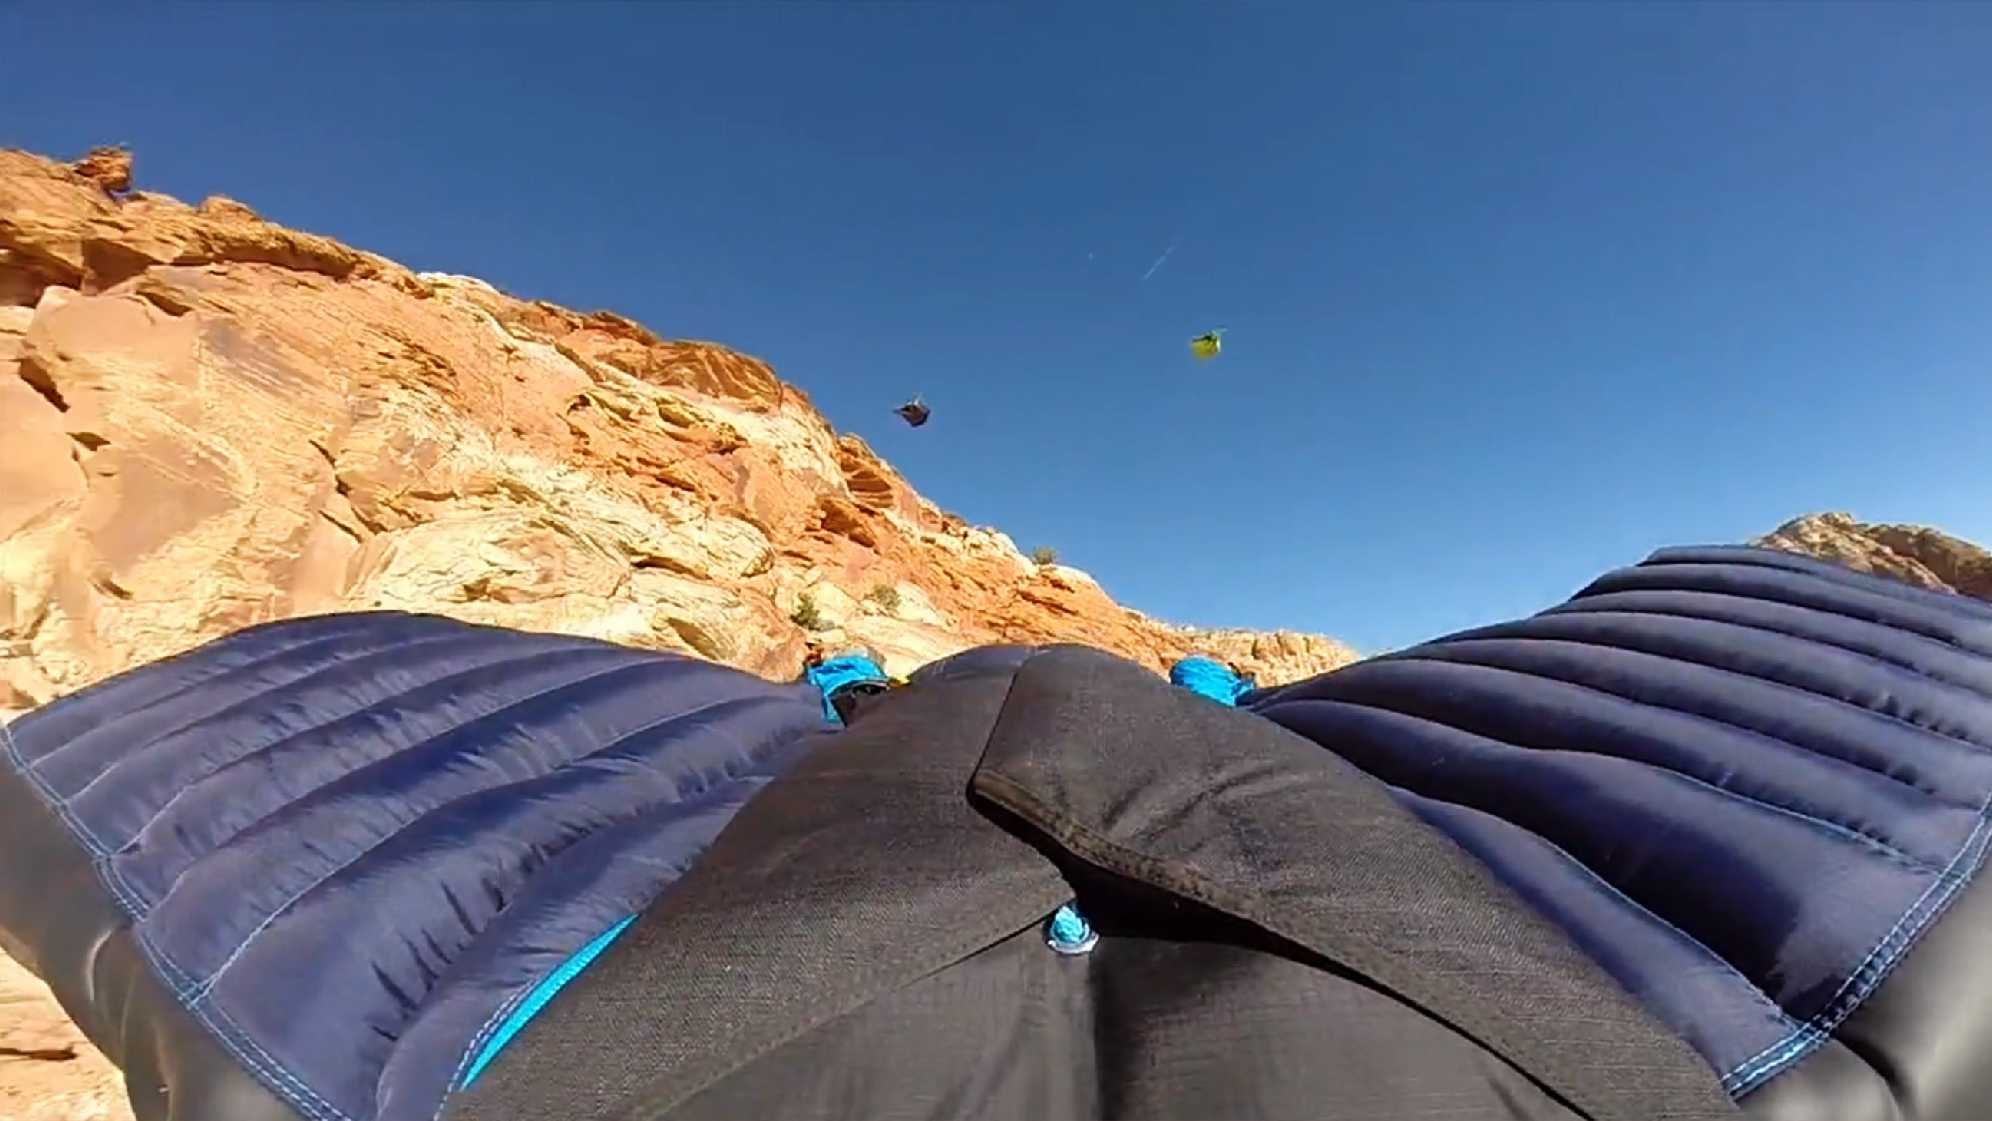 In this 2015 image, Mathew Kenney is seen among three wingsuit jumpers in Paria Canyon.